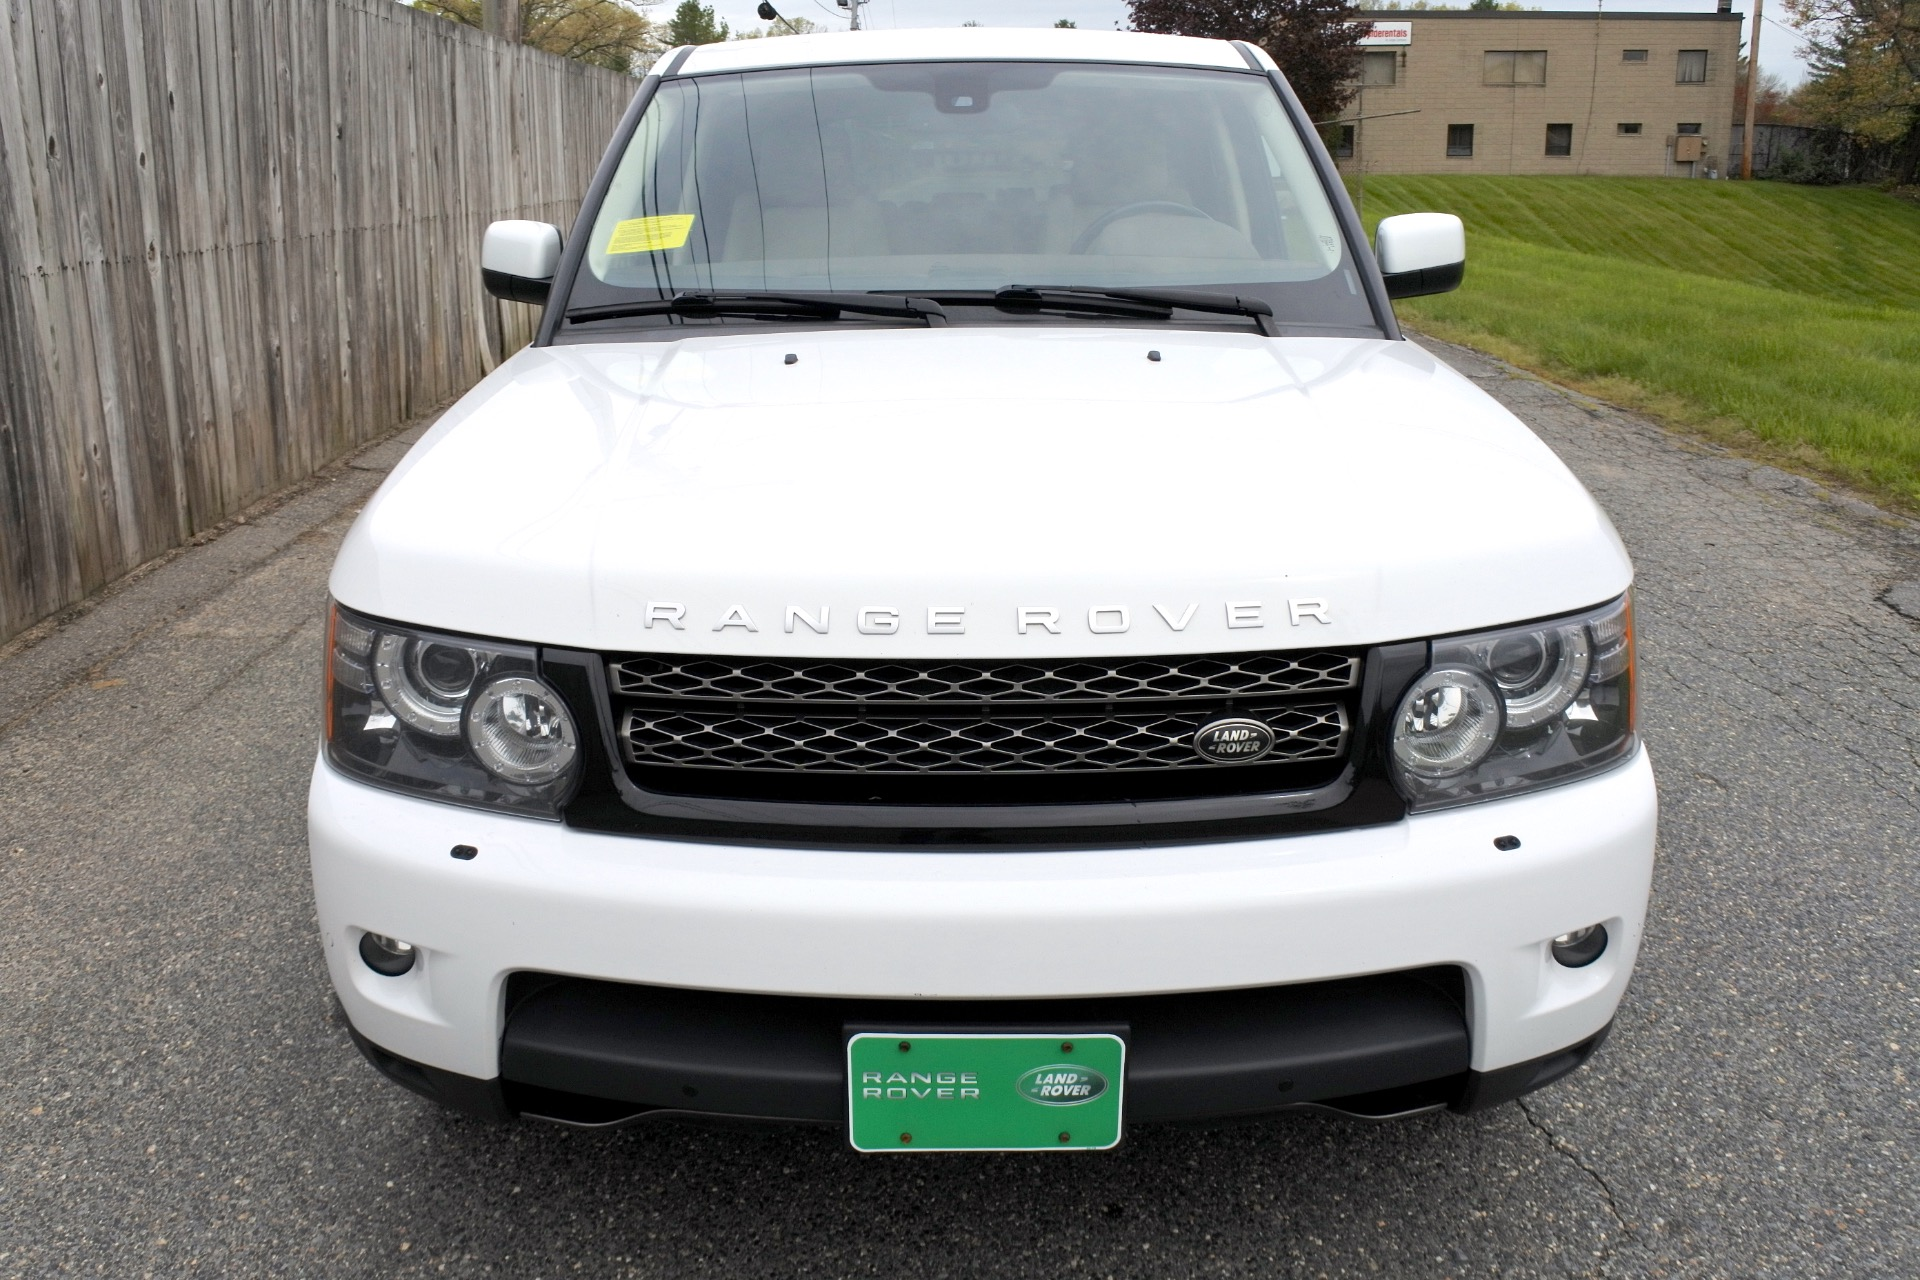 Used 2013 Land Rover Range Rover Sport HSE Used 2013 Land Rover Range Rover Sport HSE for sale  at Metro West Motorcars LLC in Shrewsbury MA 8